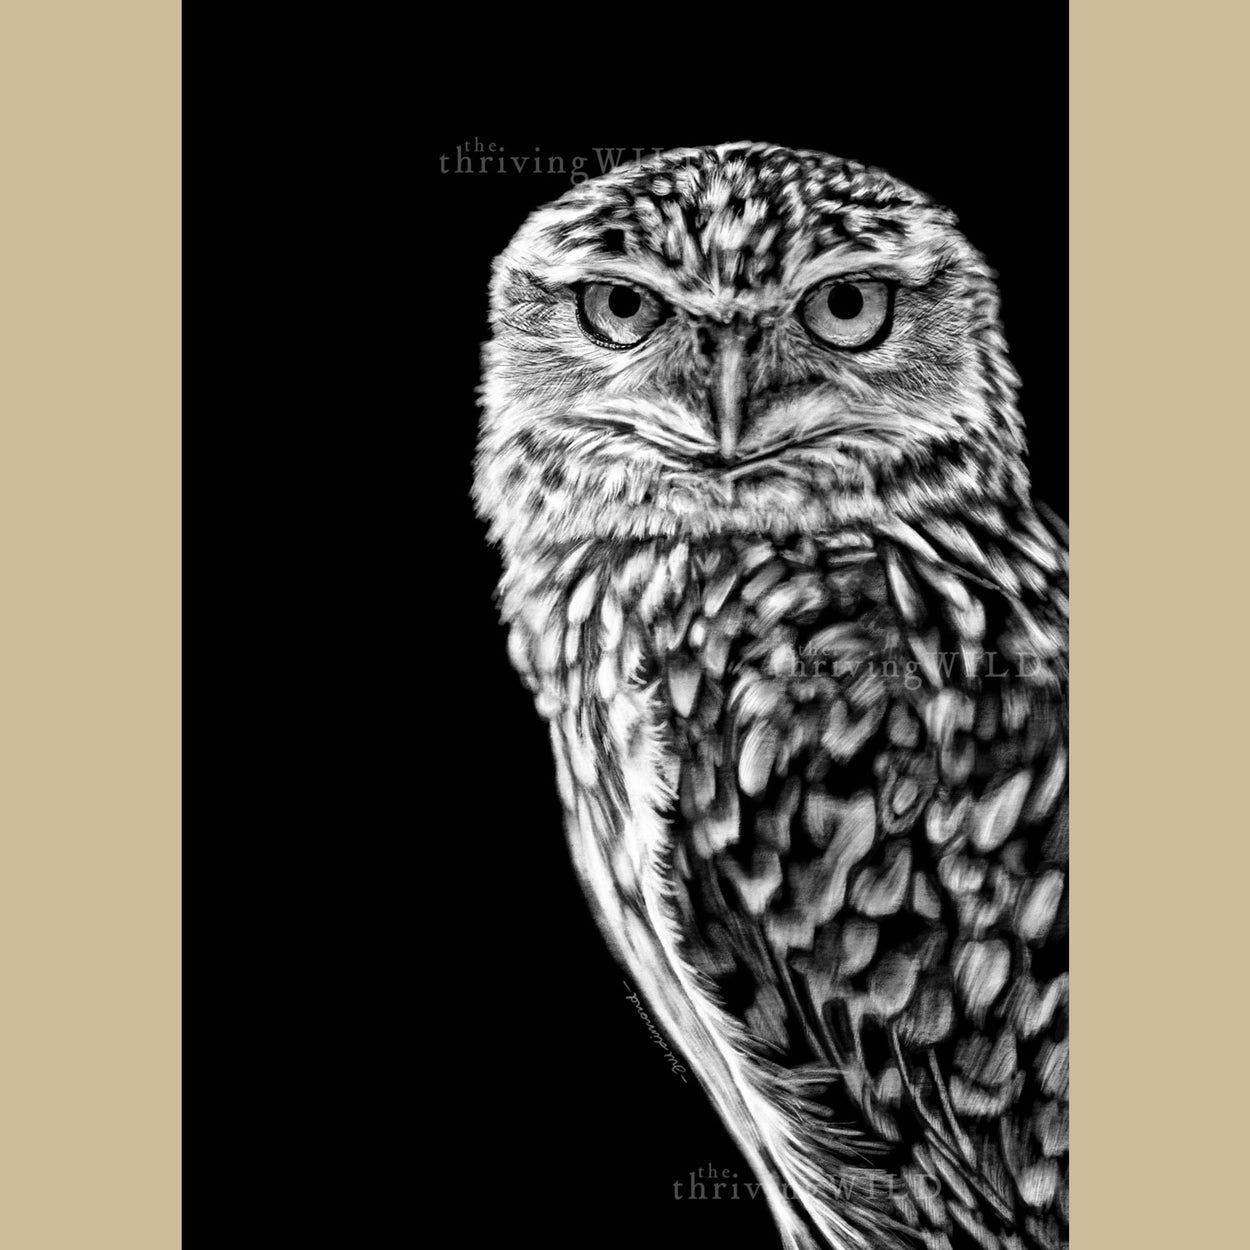 Burrowing Owl Procreate Digital Drawing - The Thriving Wild